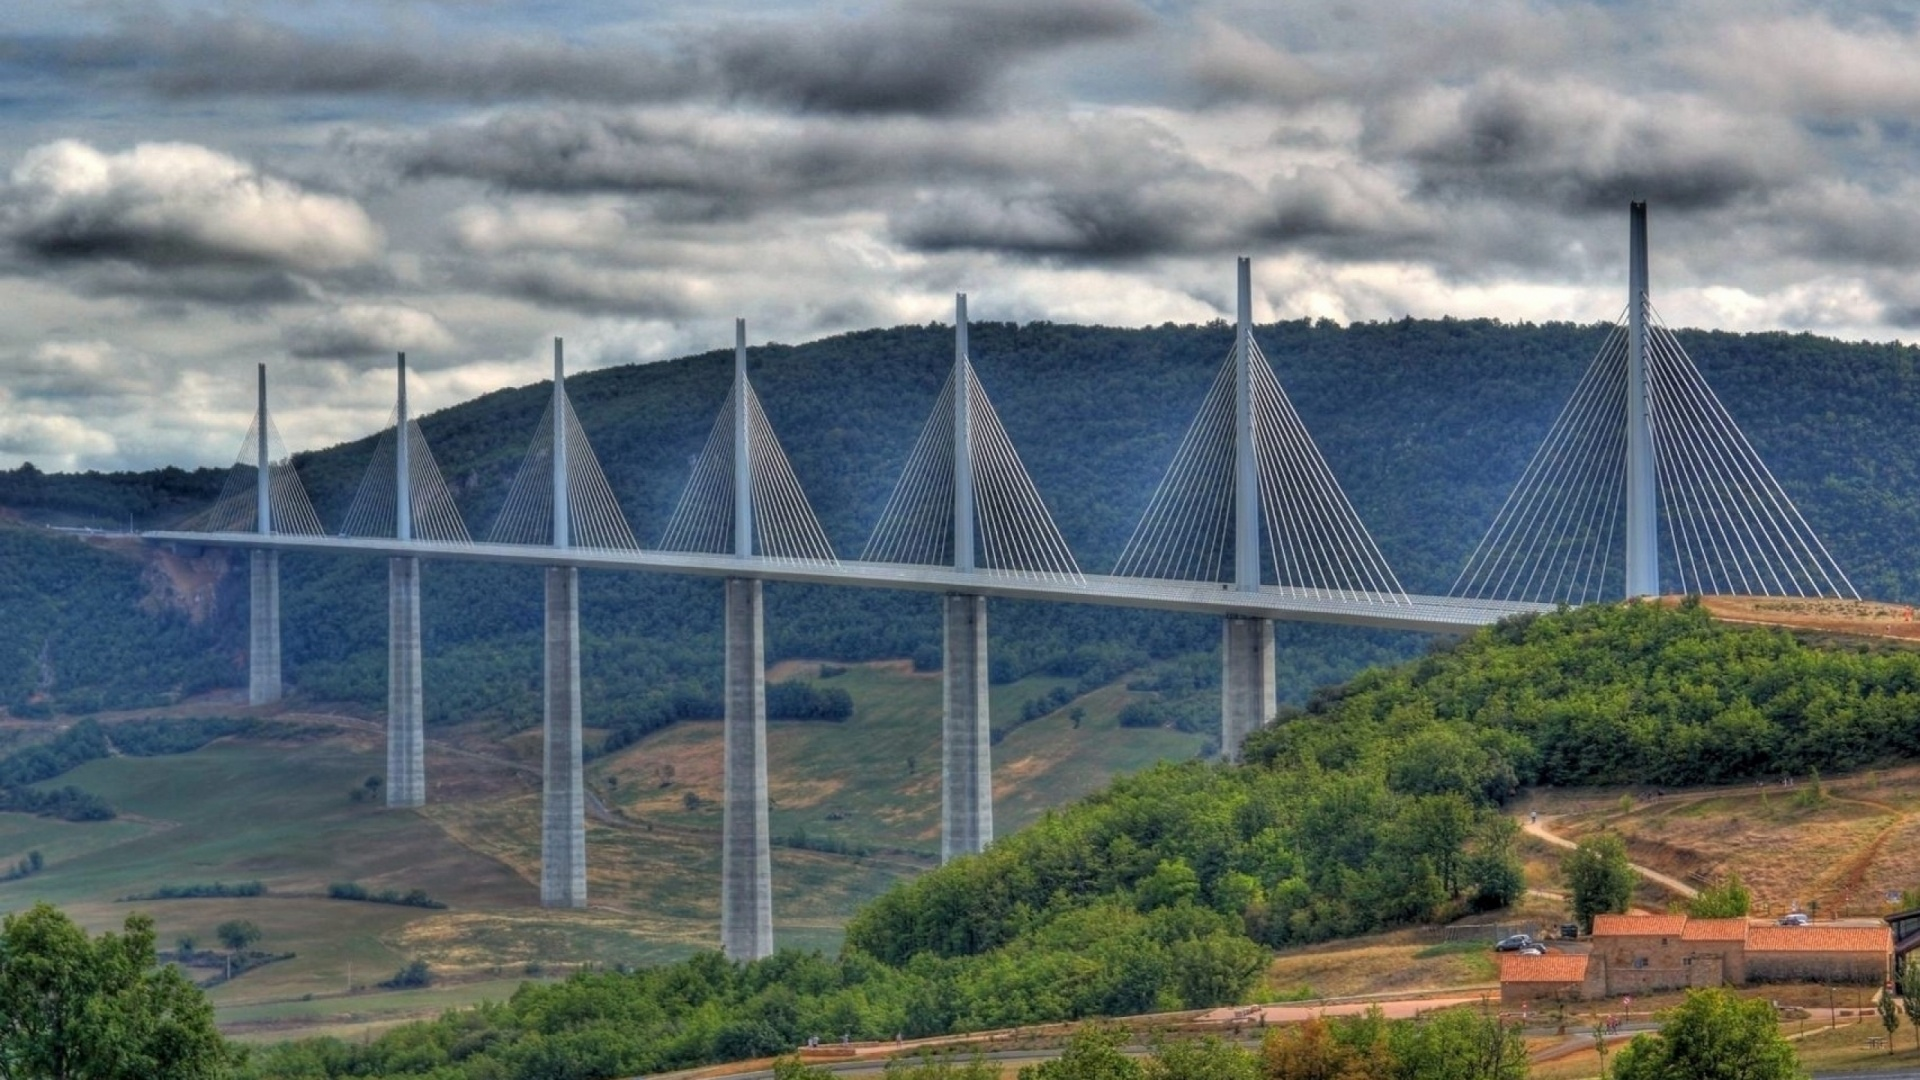 construction of millau viaduct world s tallest The incredible millau viaduct bridge was opened in december 2004 and is the highest bridge in the world, standing 270 meters (890 feet) over the tarn river and is more than 340 meters it is slightly taller than the eiffel tower in paris and only 38 meters (125 ft) shorter than the empire state building.